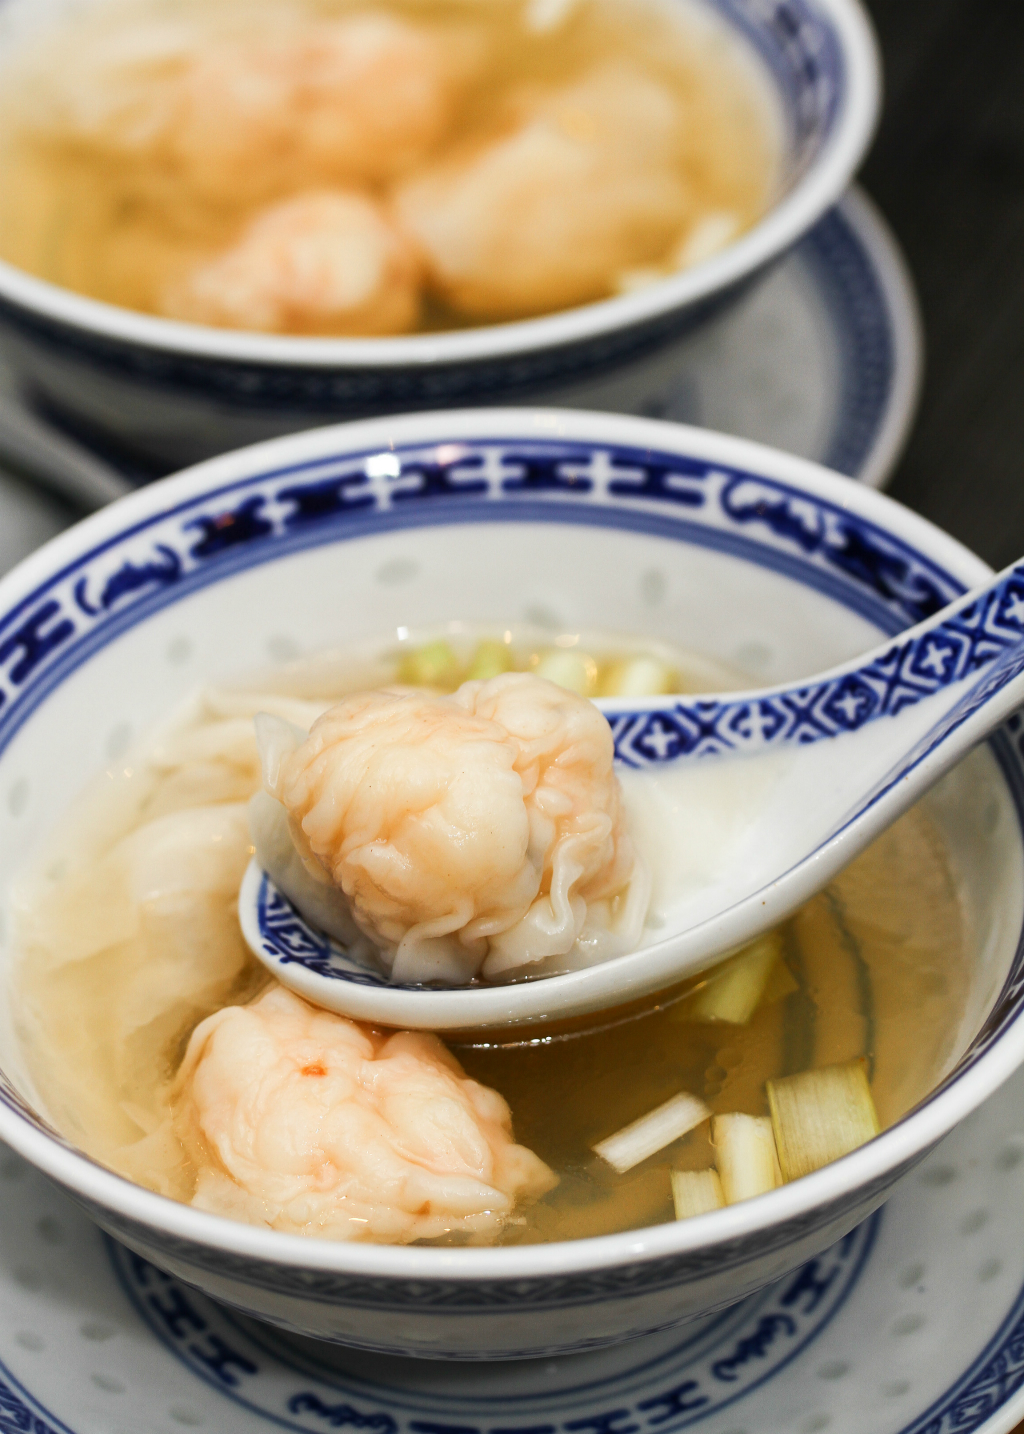 Mak's Noodle's wantons are stuffed full of juicy nuggets of pork and shrimp